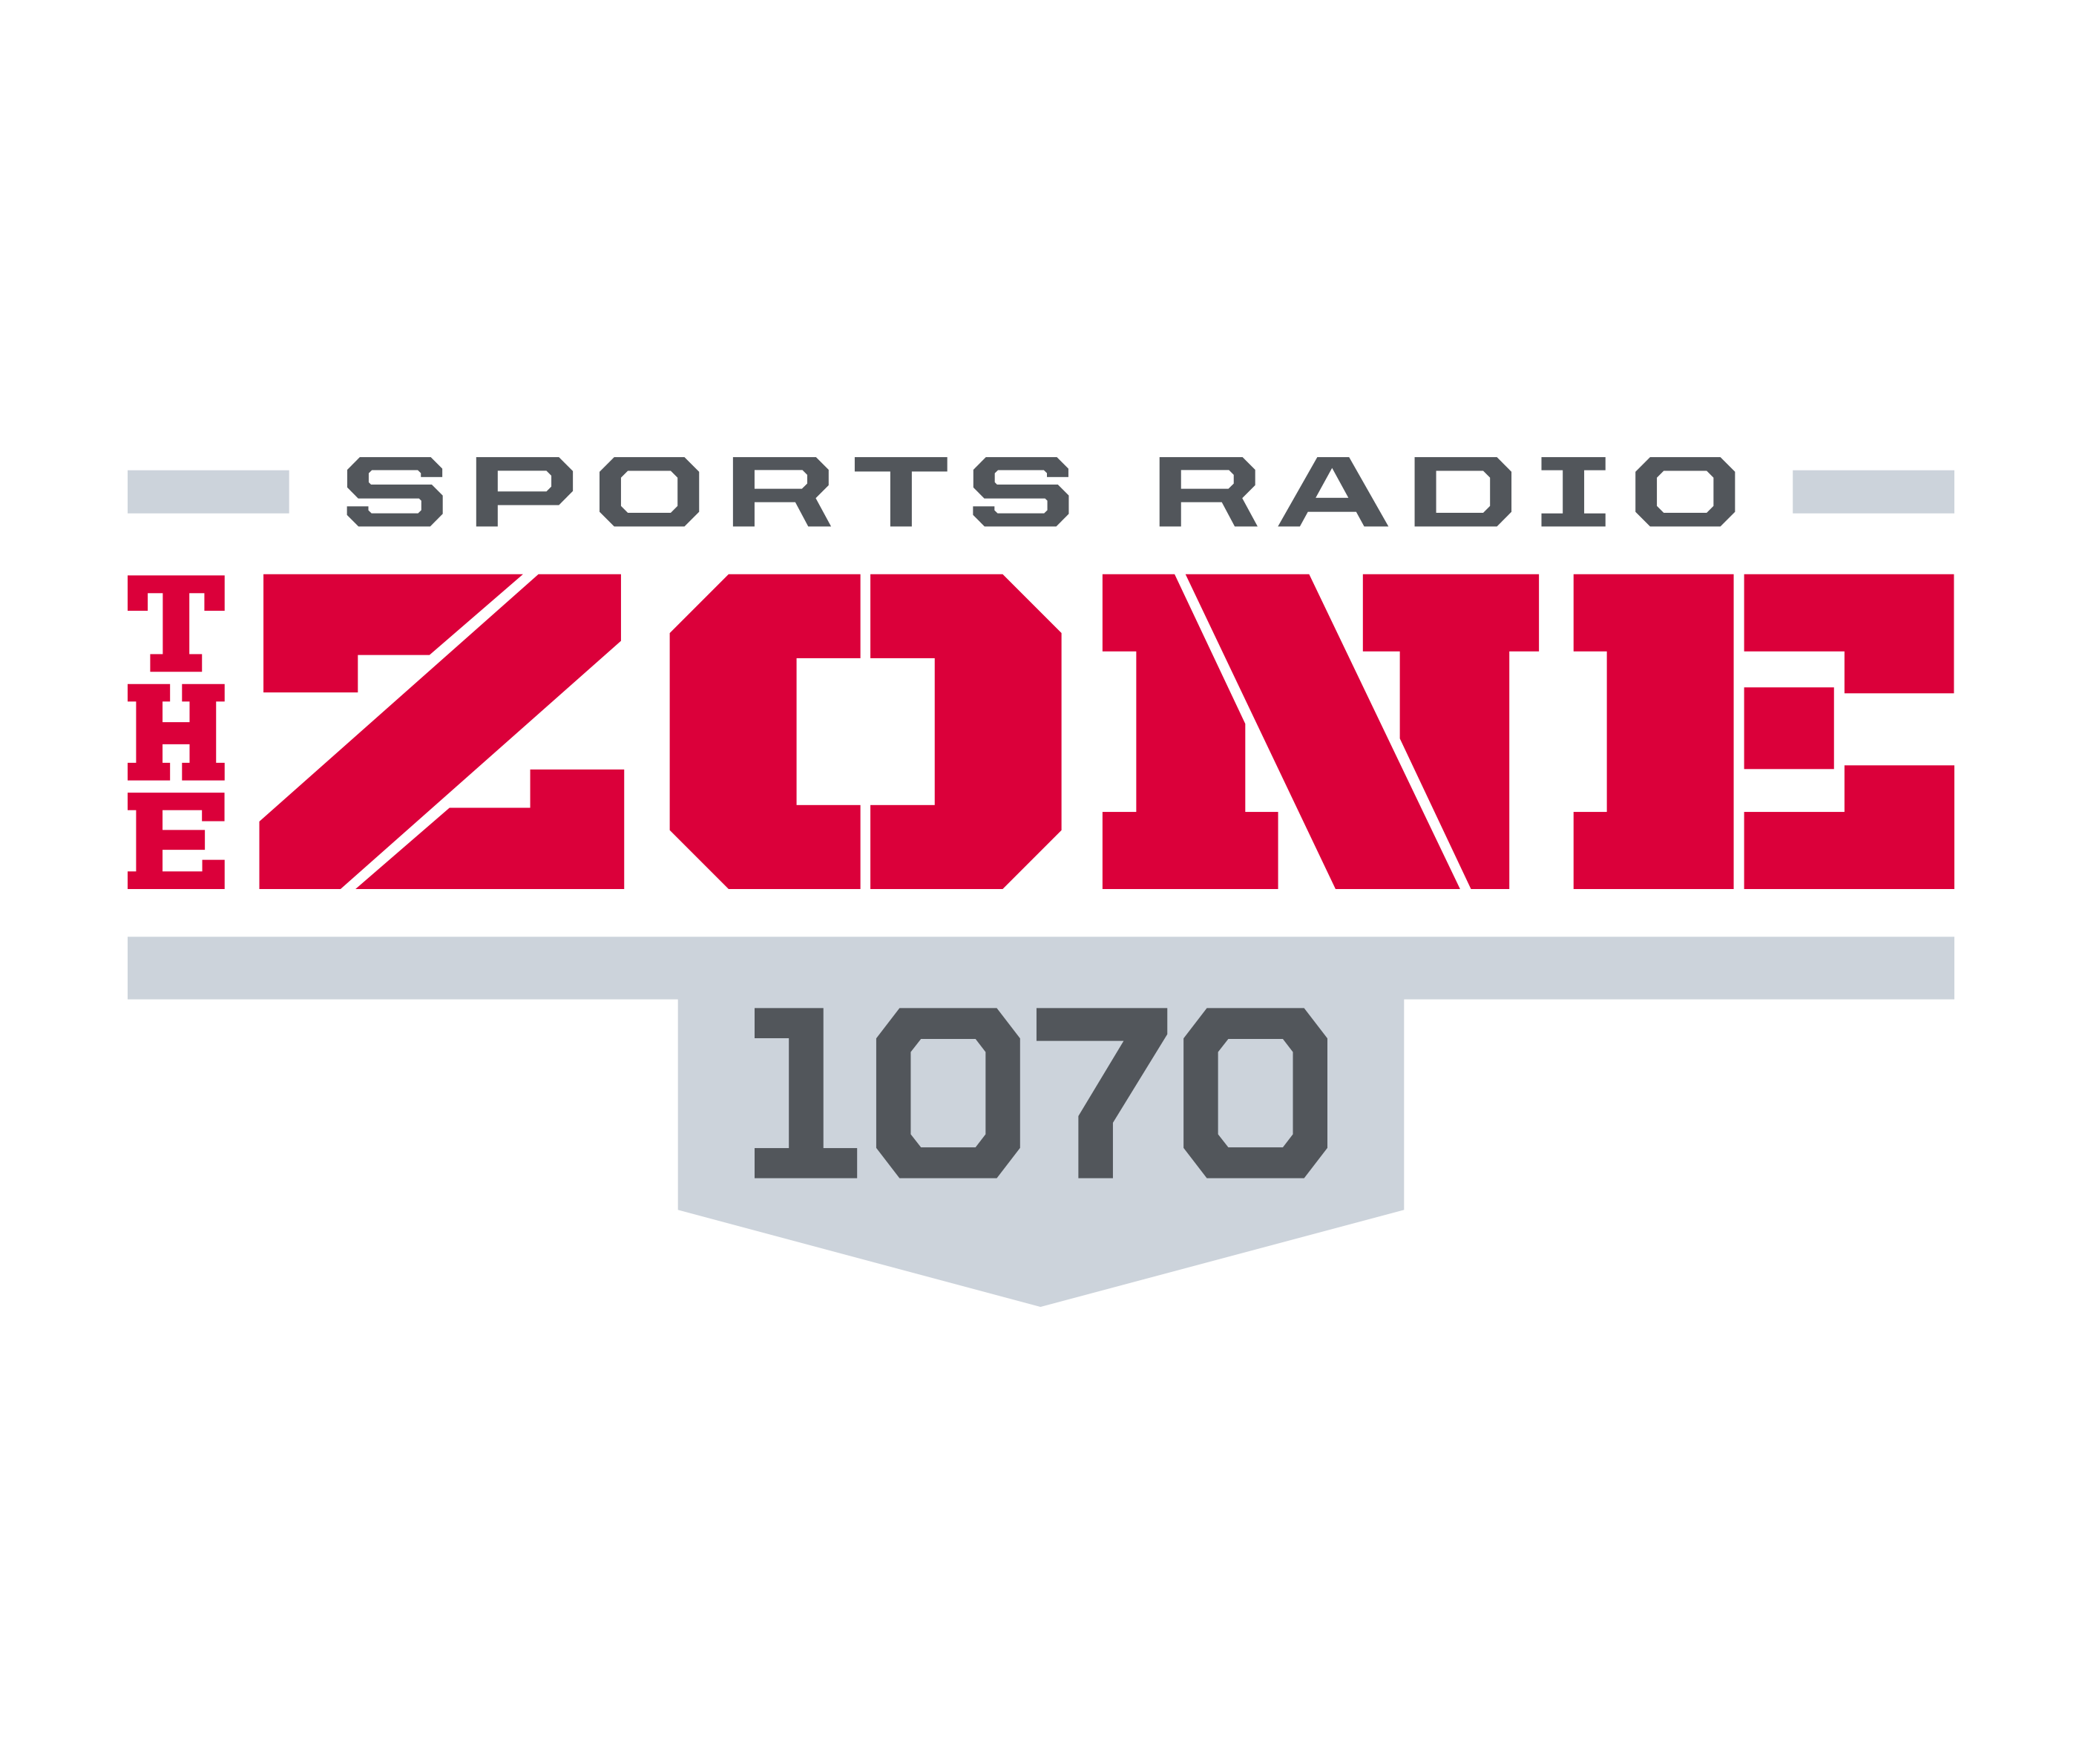 1070 The Zone - Southwest Florida's Home for Sports Radio